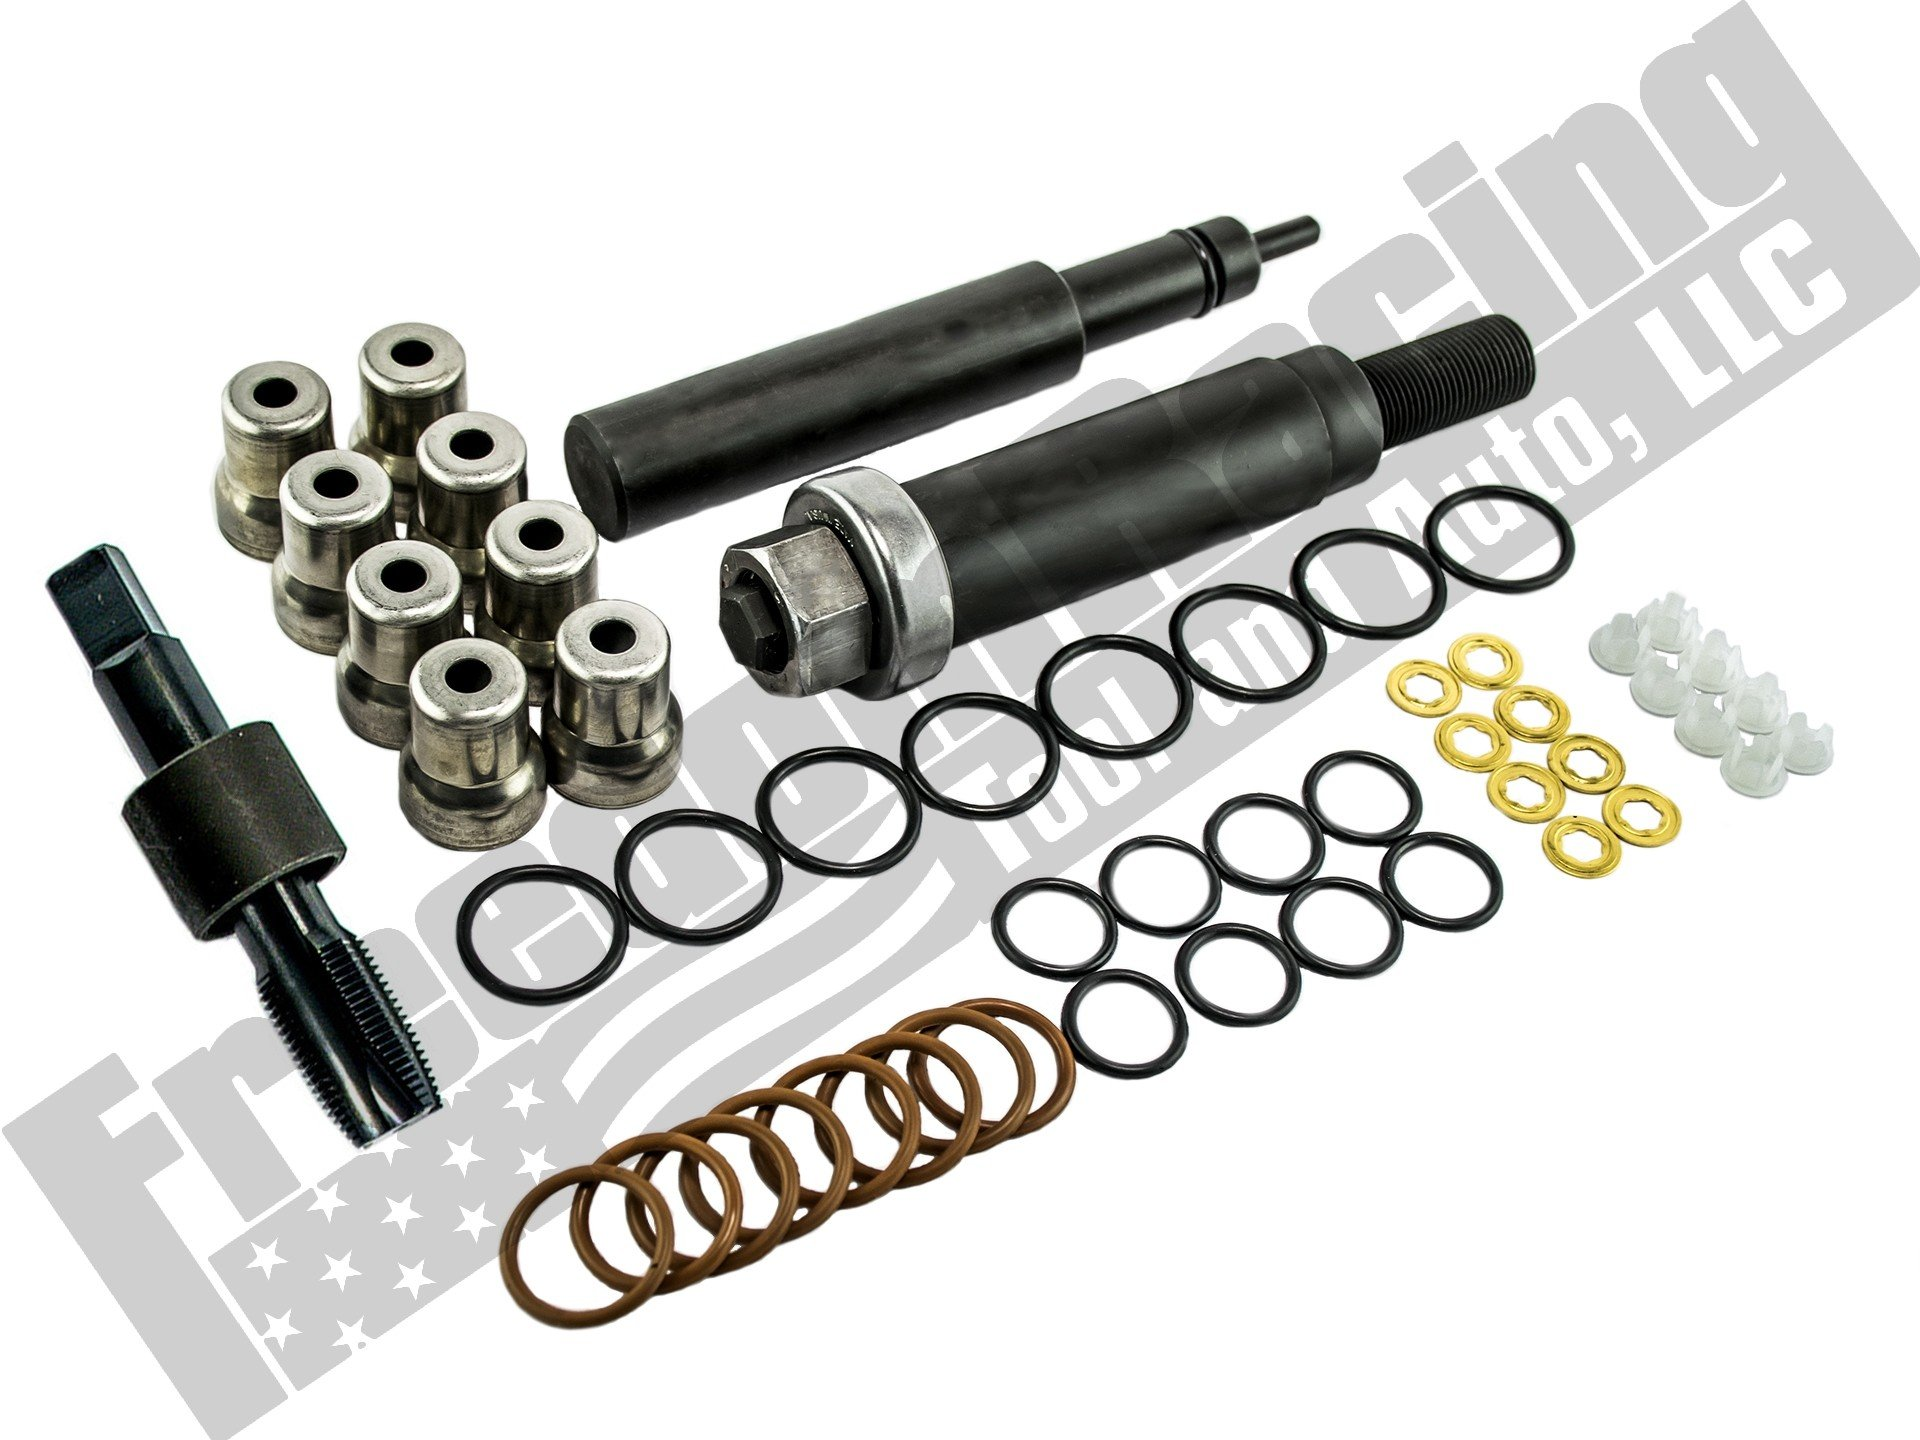 Kit Cars To Build Yourself In Usa: 303-767 303-768 6.0L Fuel Injector Sleeve Cup In-Vehicle